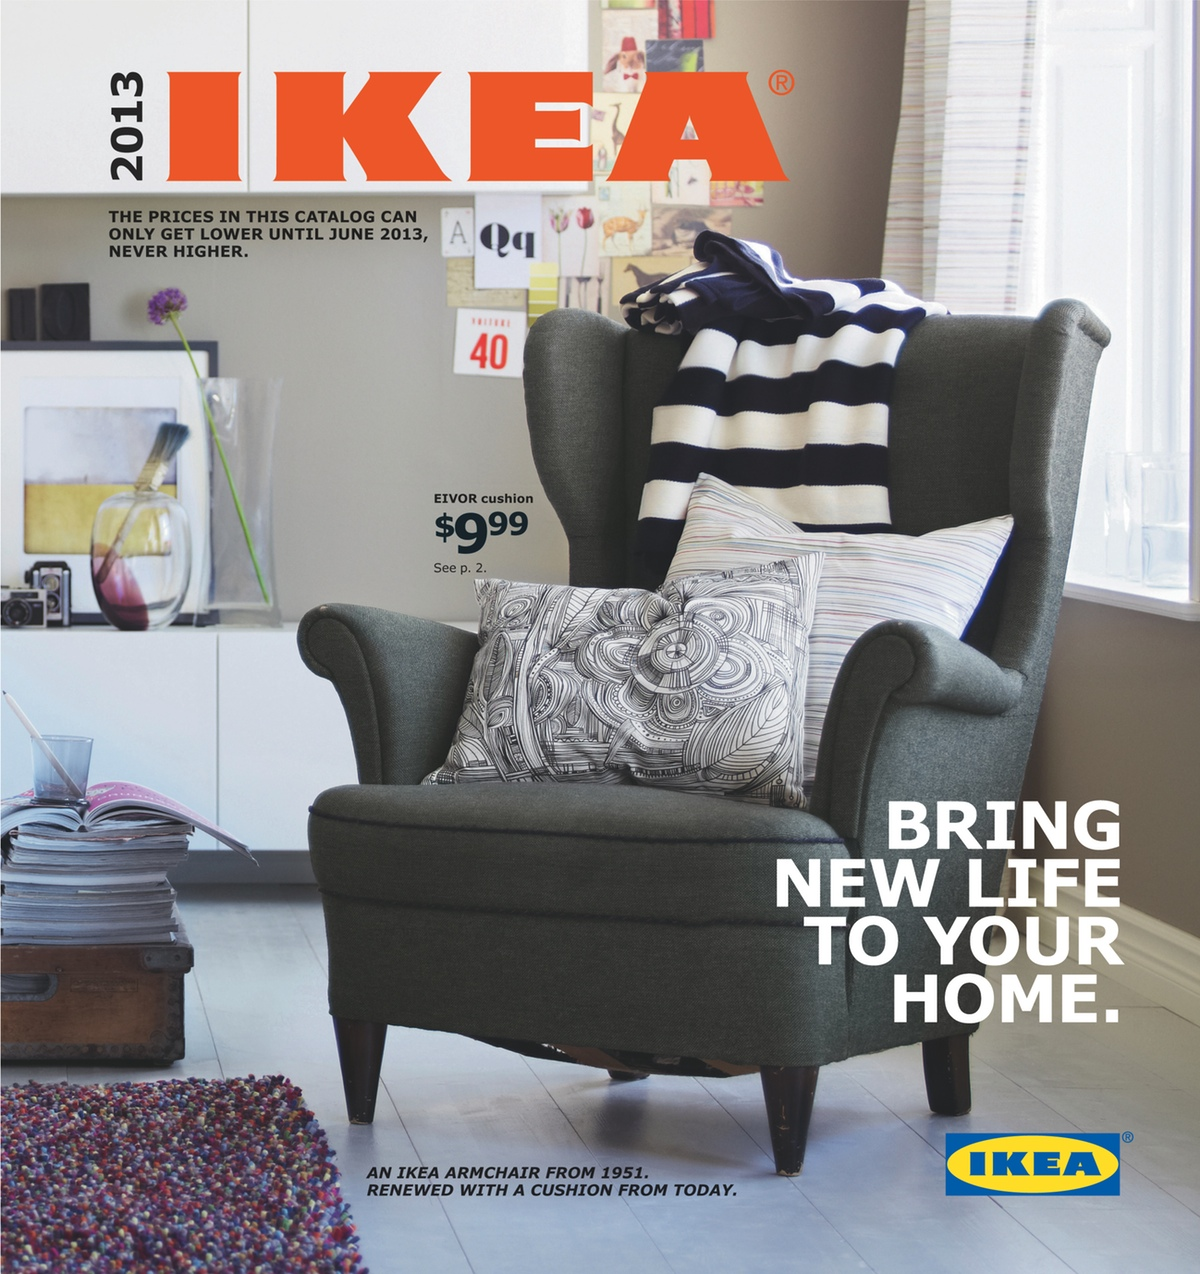 9808 to ikea or not to ikea 1001 home interior catalog catalogs app review ios 0 99